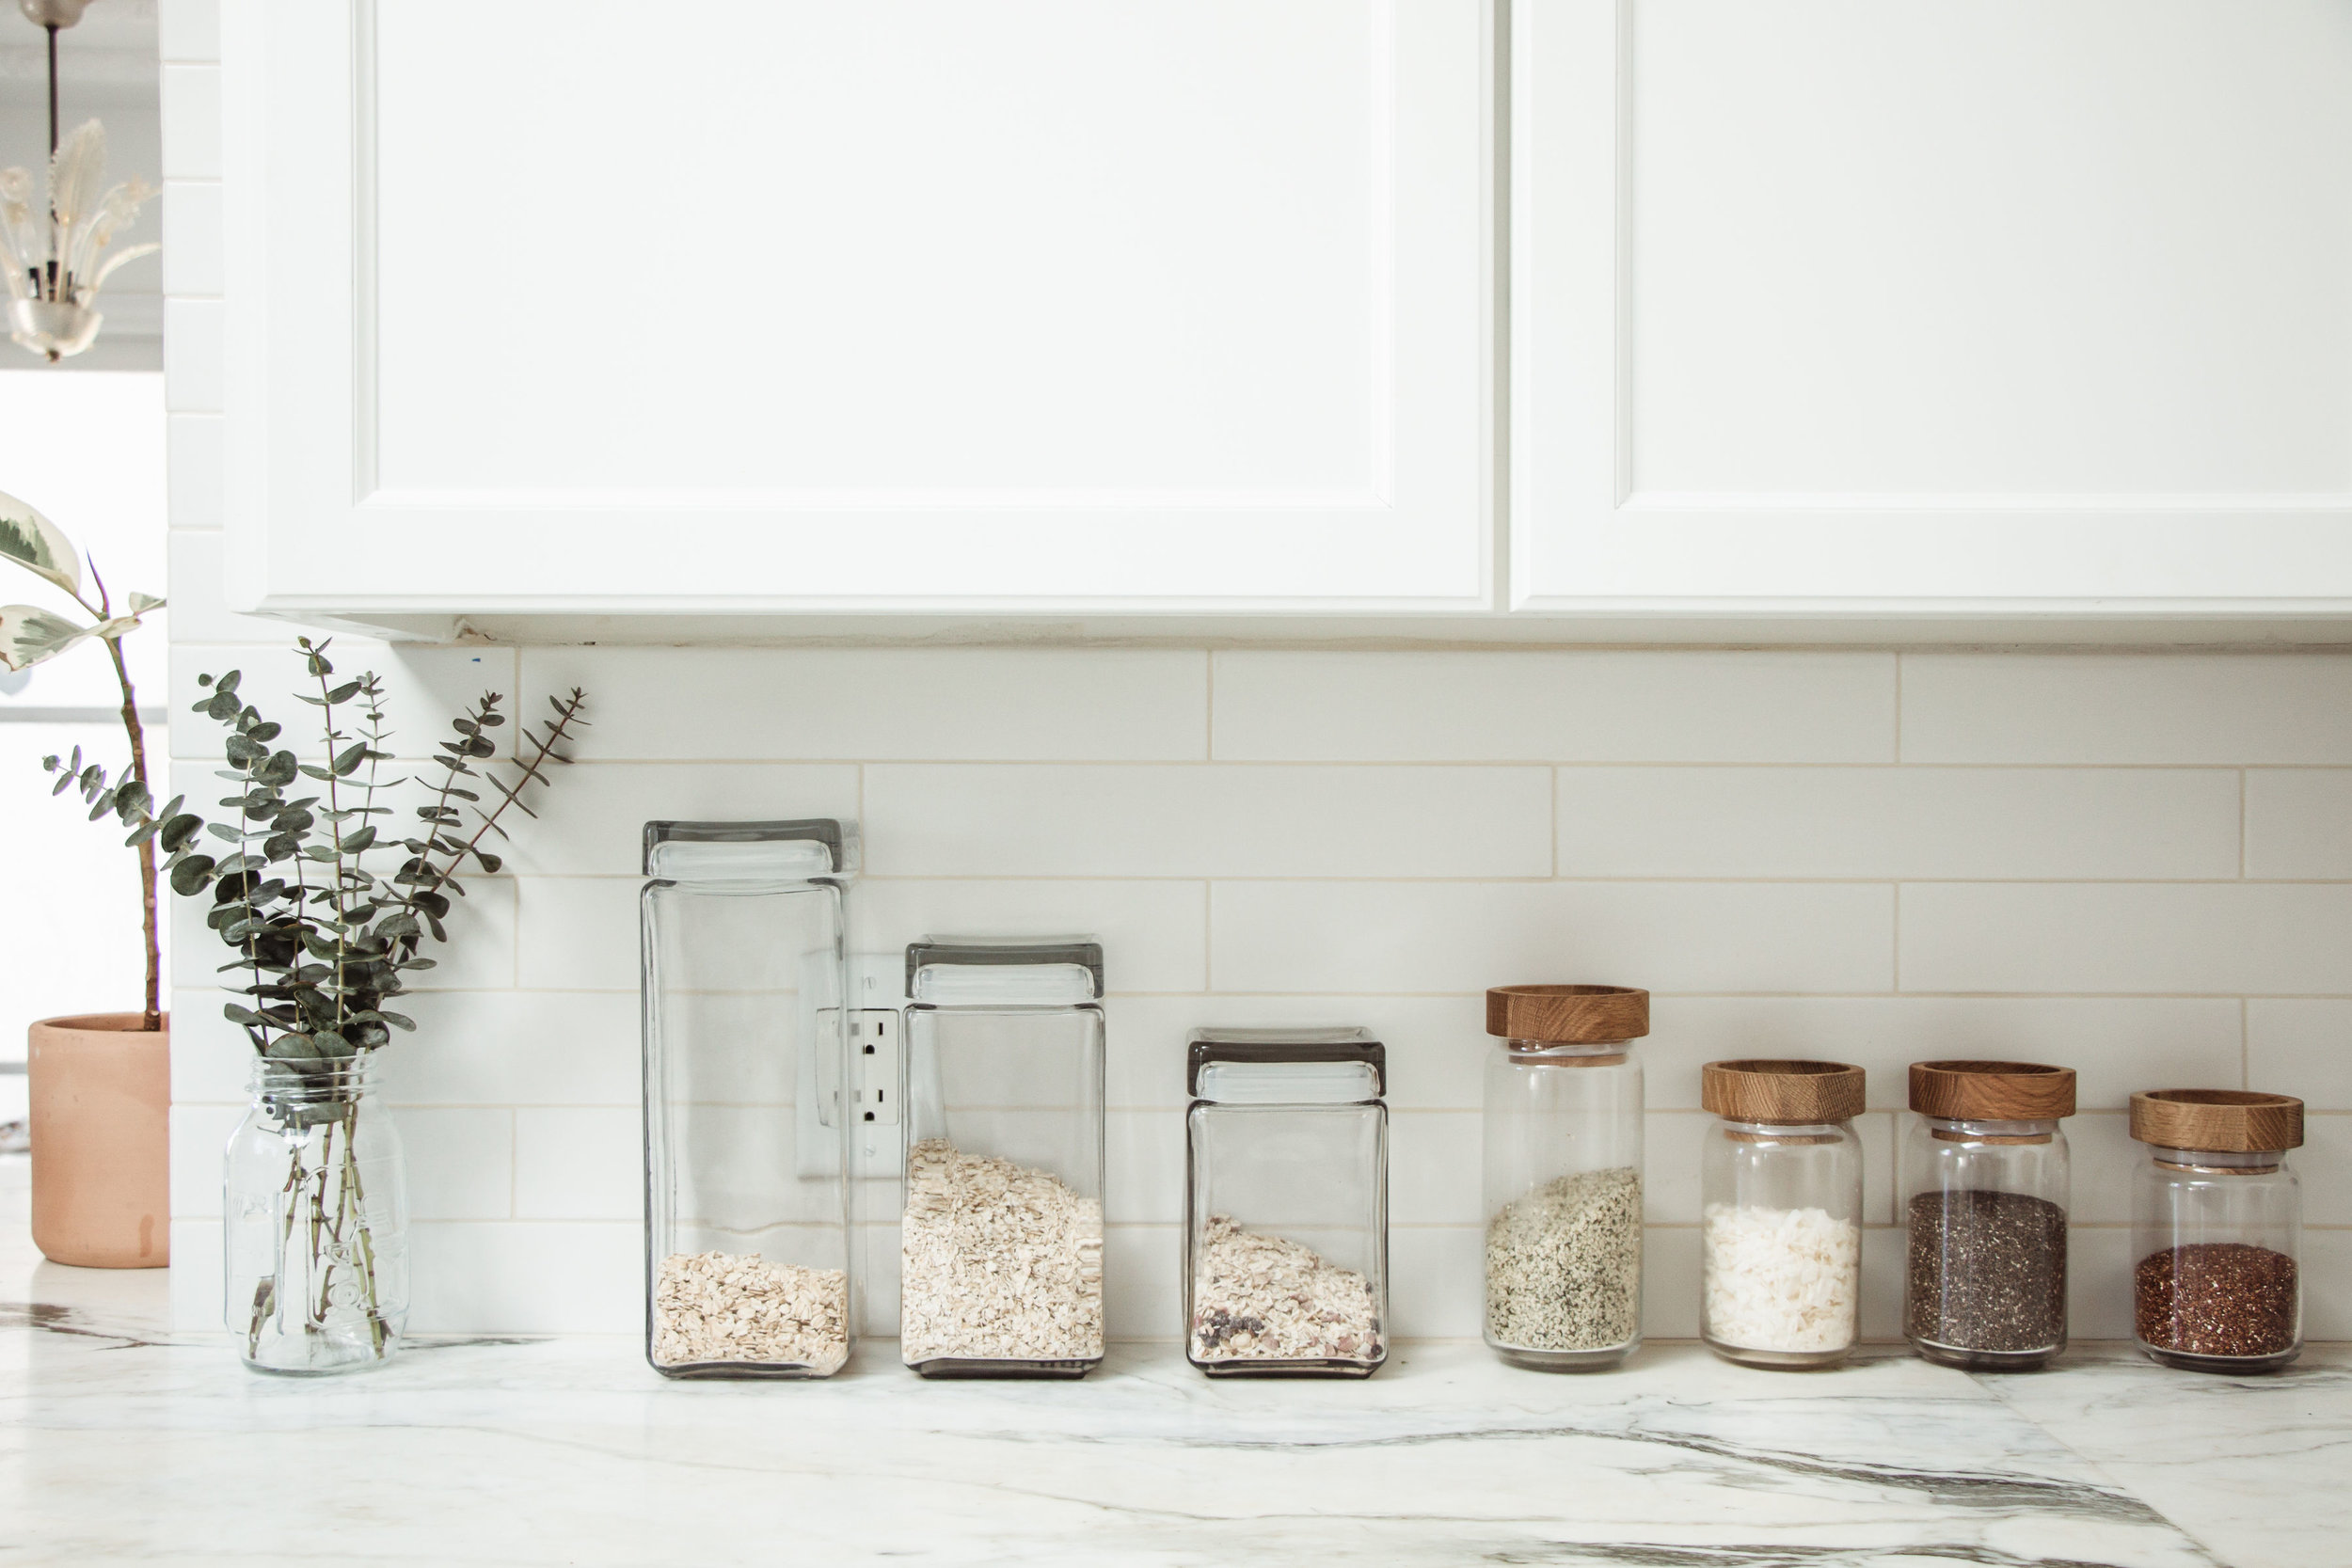 Minimalist kitchen counter organization